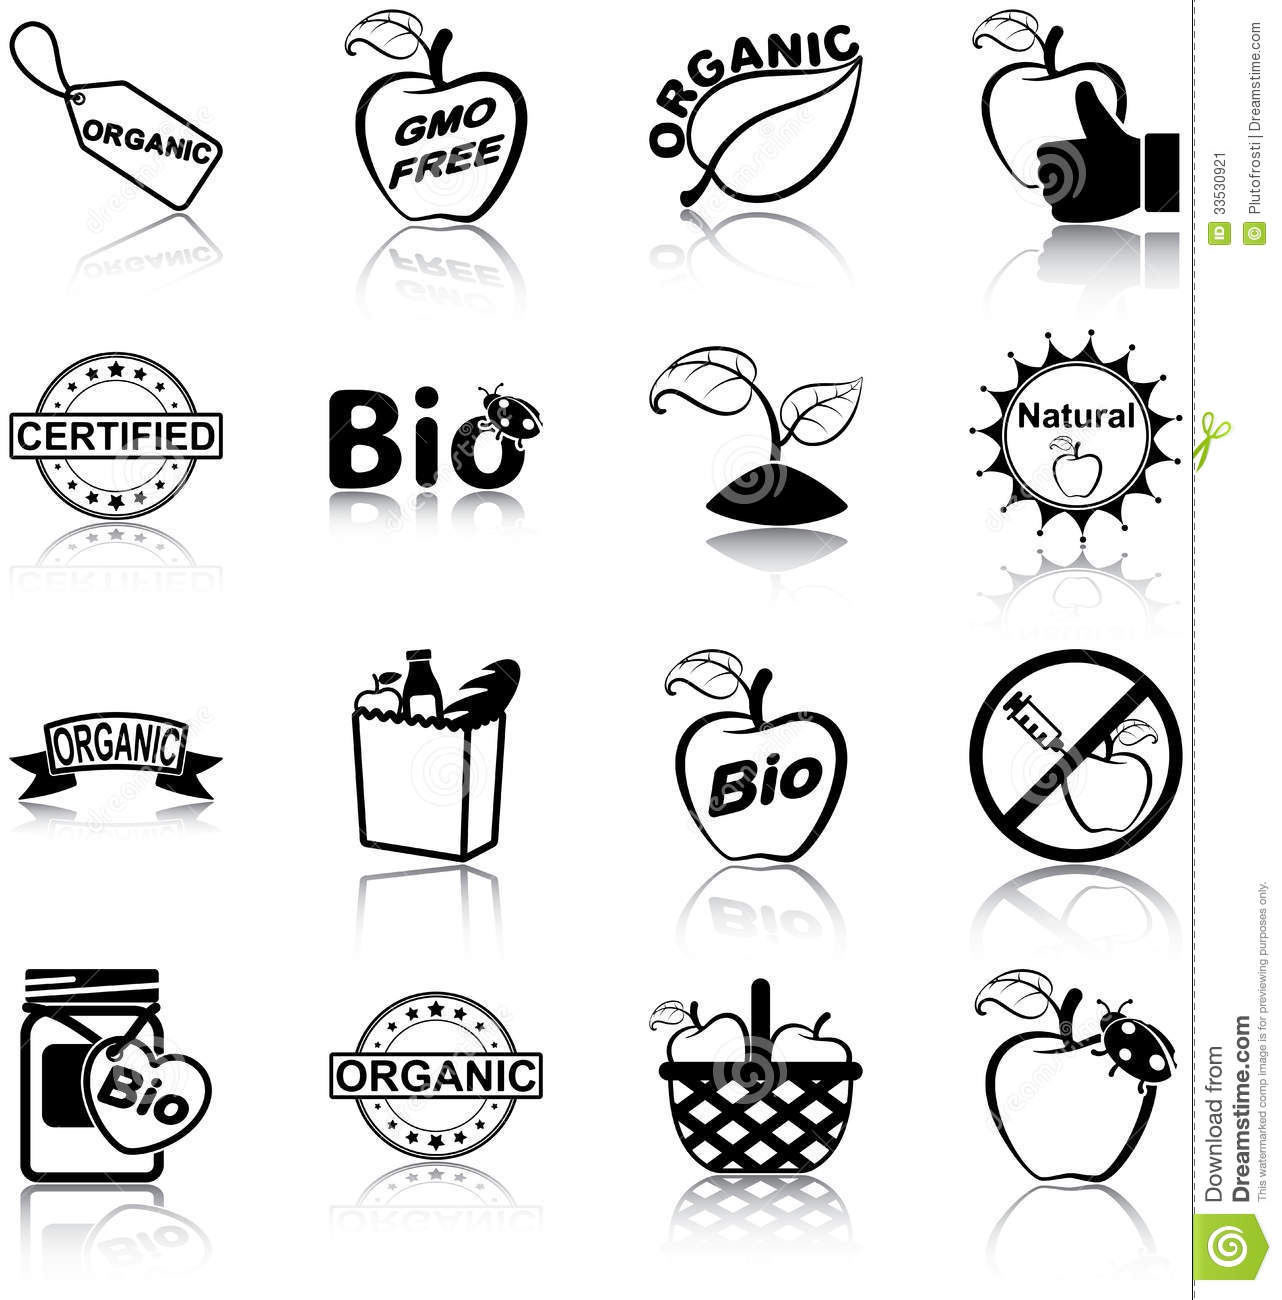 Organic food icons stock vector. Illustration of